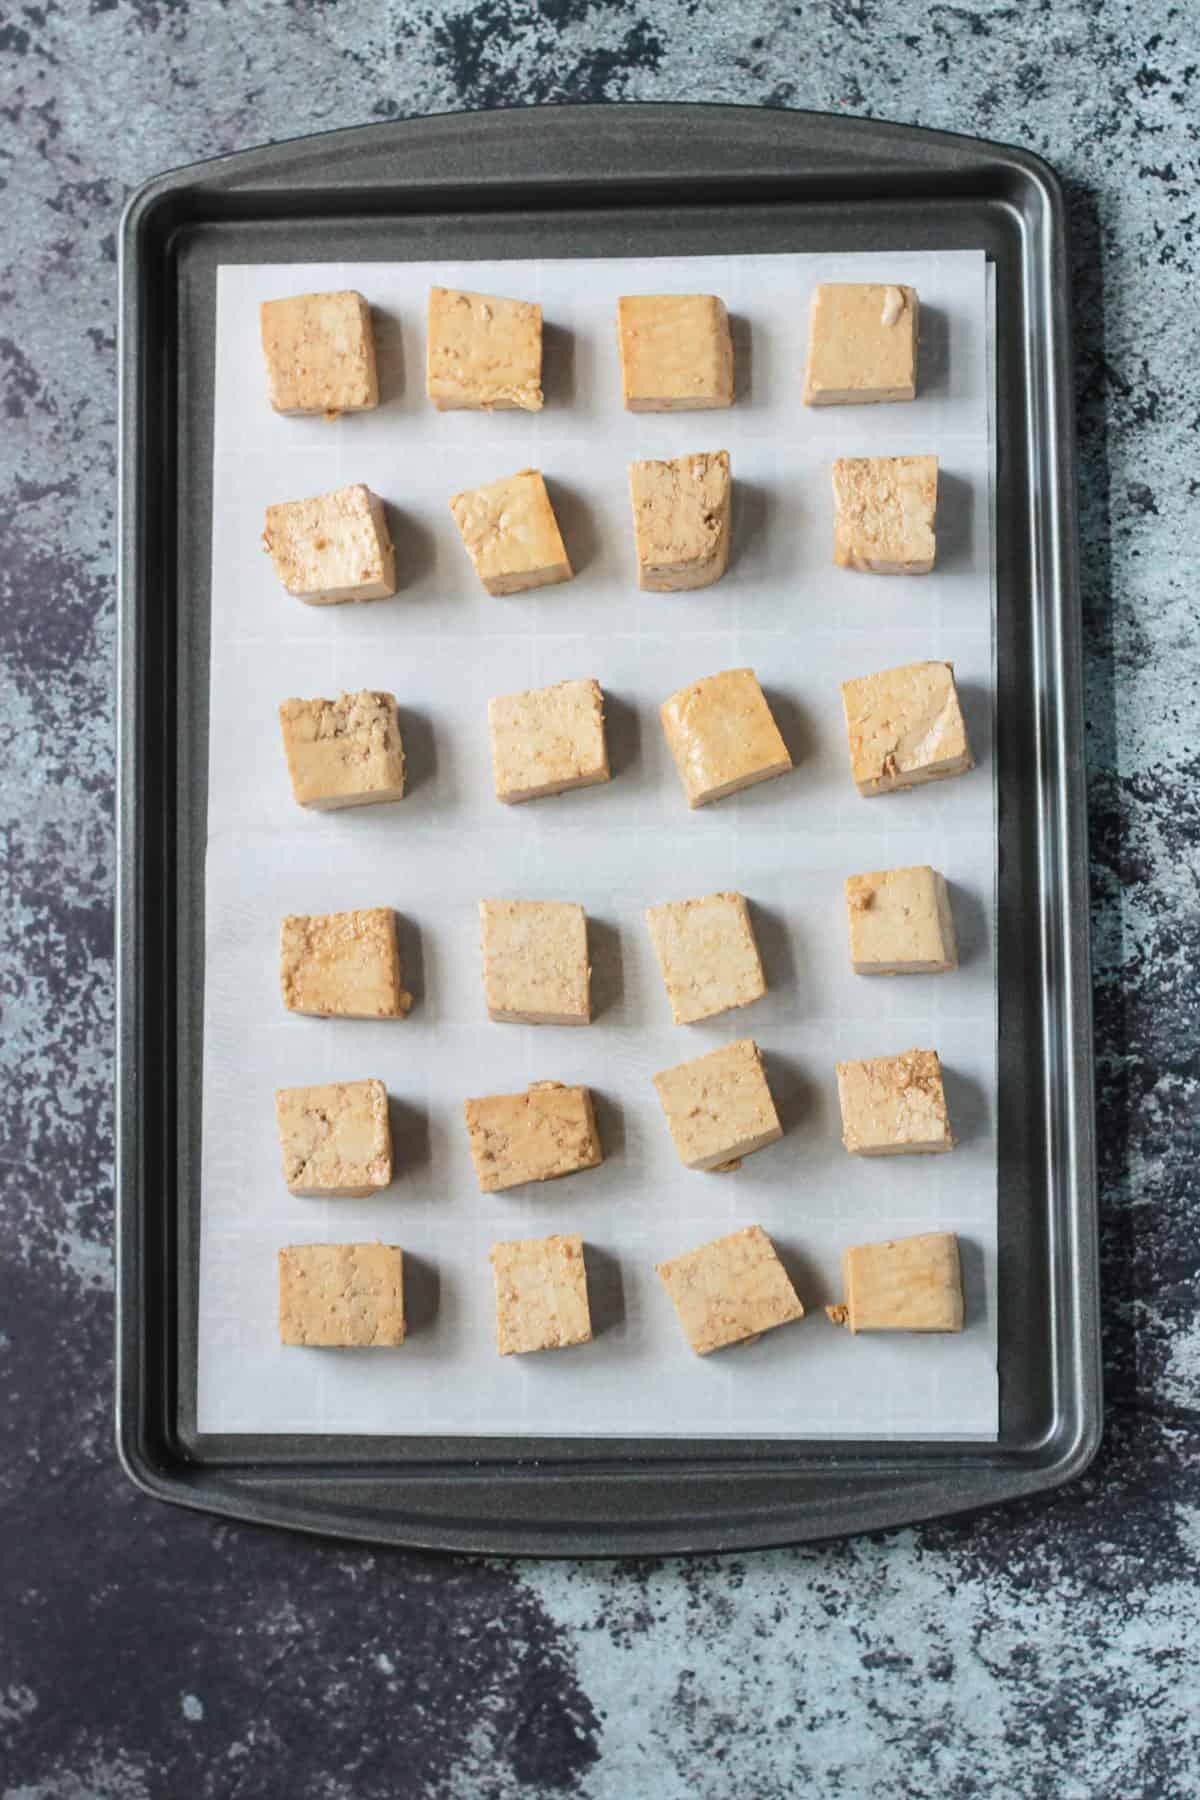 marinated tofu cubes on a sheet pan ready to go in the oven